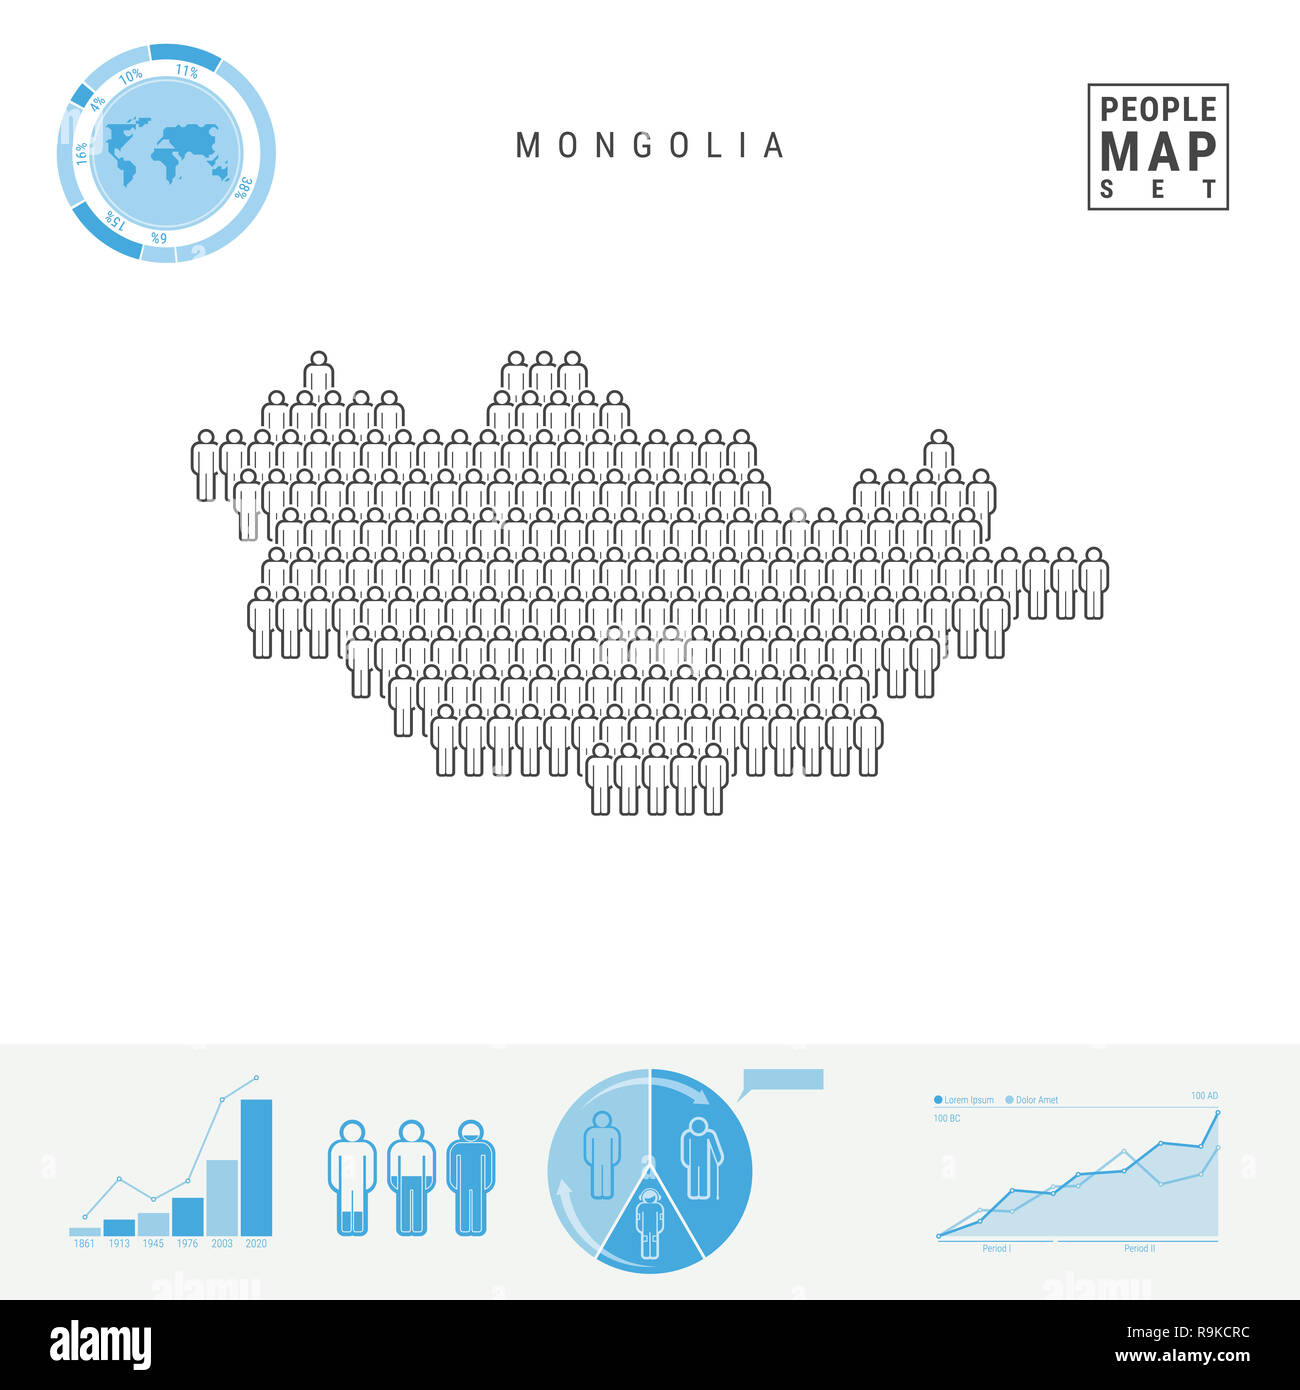 Mongolia People Icon Map. People Crowd in the Shape of a Map of Mongolia. Stylized Silhouette of Mongolia. Population Growth and Aging Infographic Ele Stock Photo